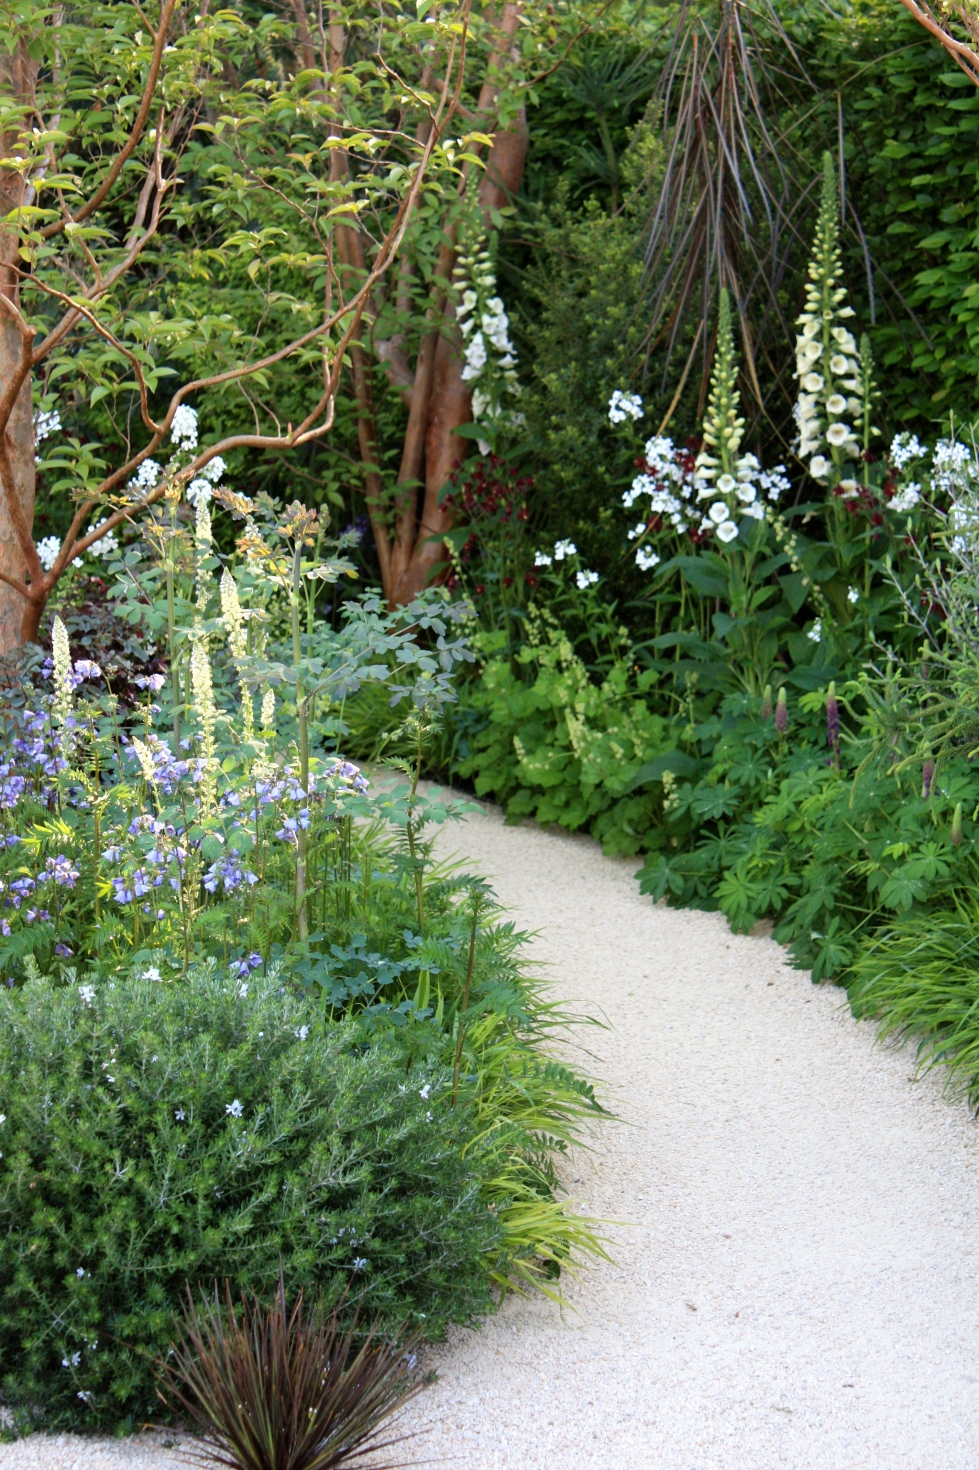 Winding away from the front of the garden, a shady pathway lined with foxgloves and dangerous-looking Pseudopanax ferox